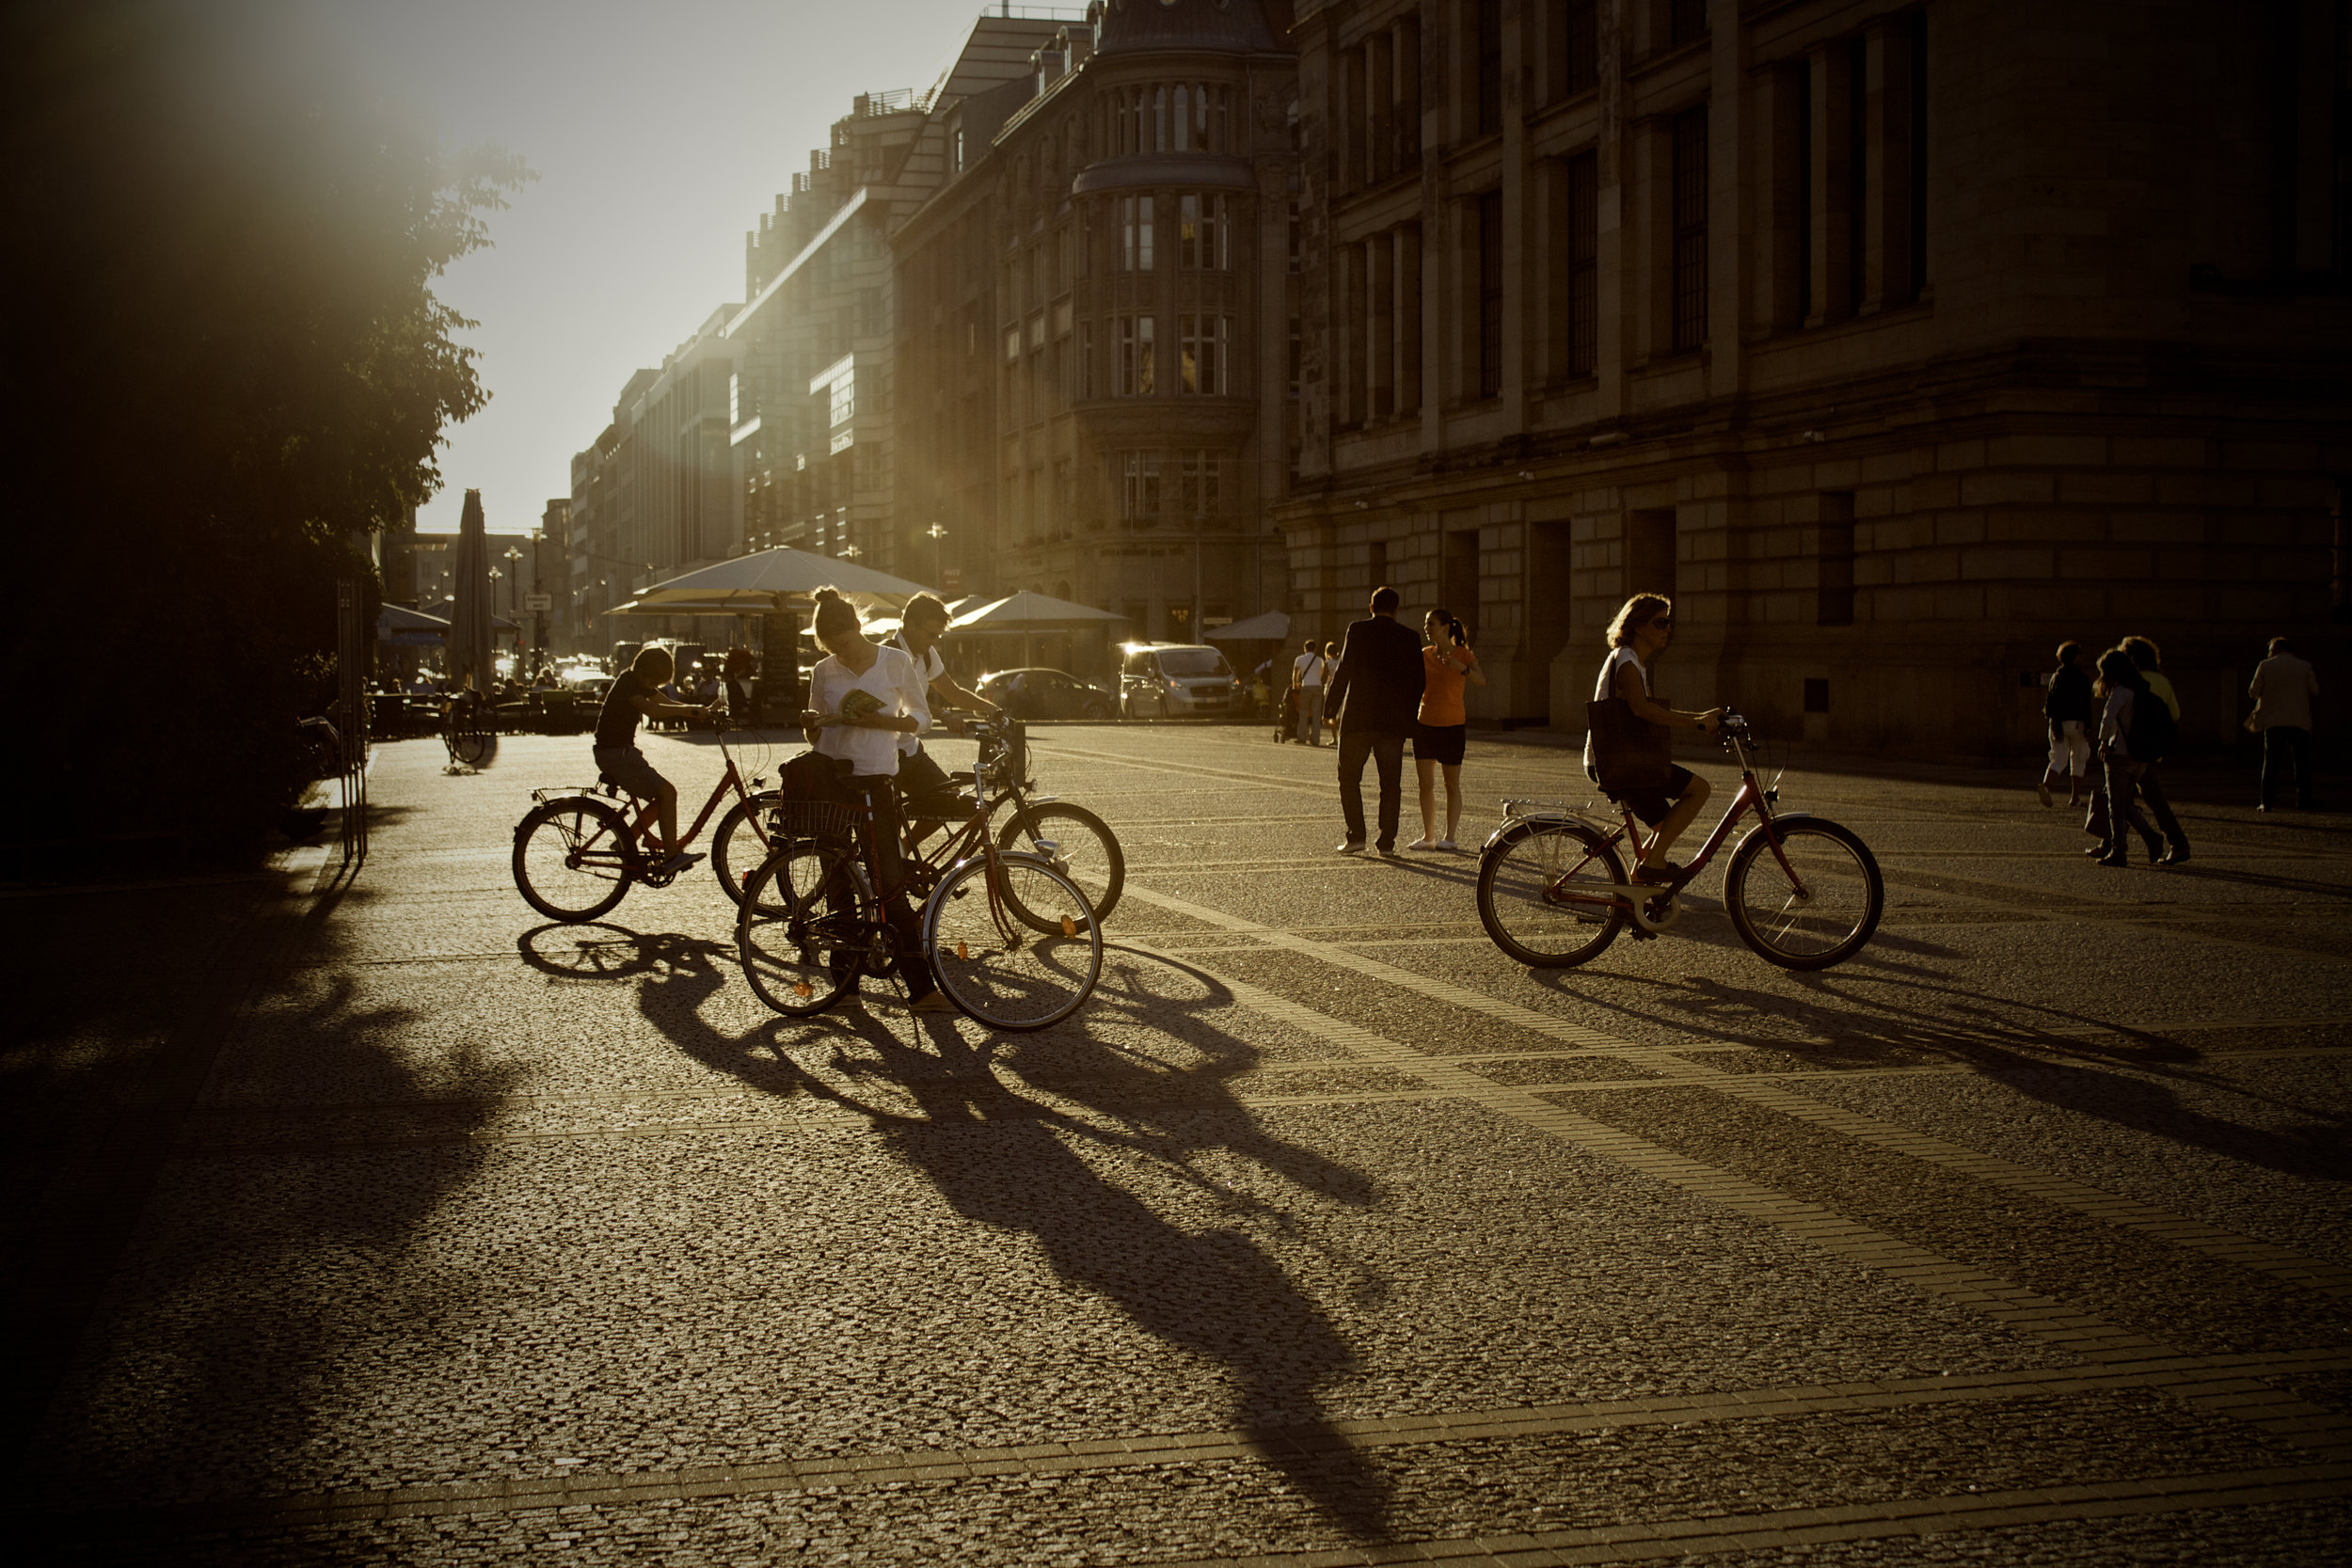 bike-city-sunrays-dope copy.jpg